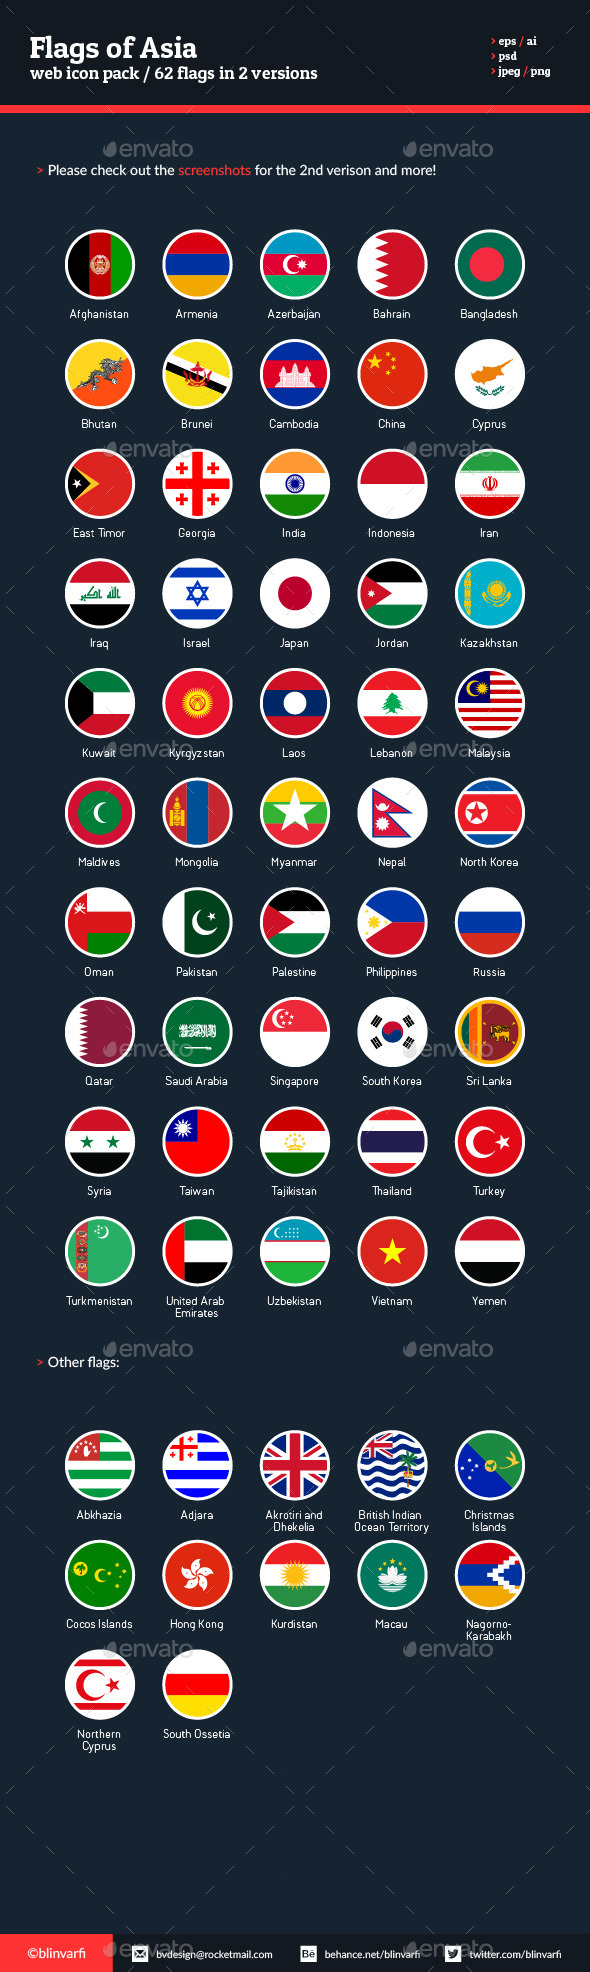 Flags of Asia - Round Flat Icons - Web Icons